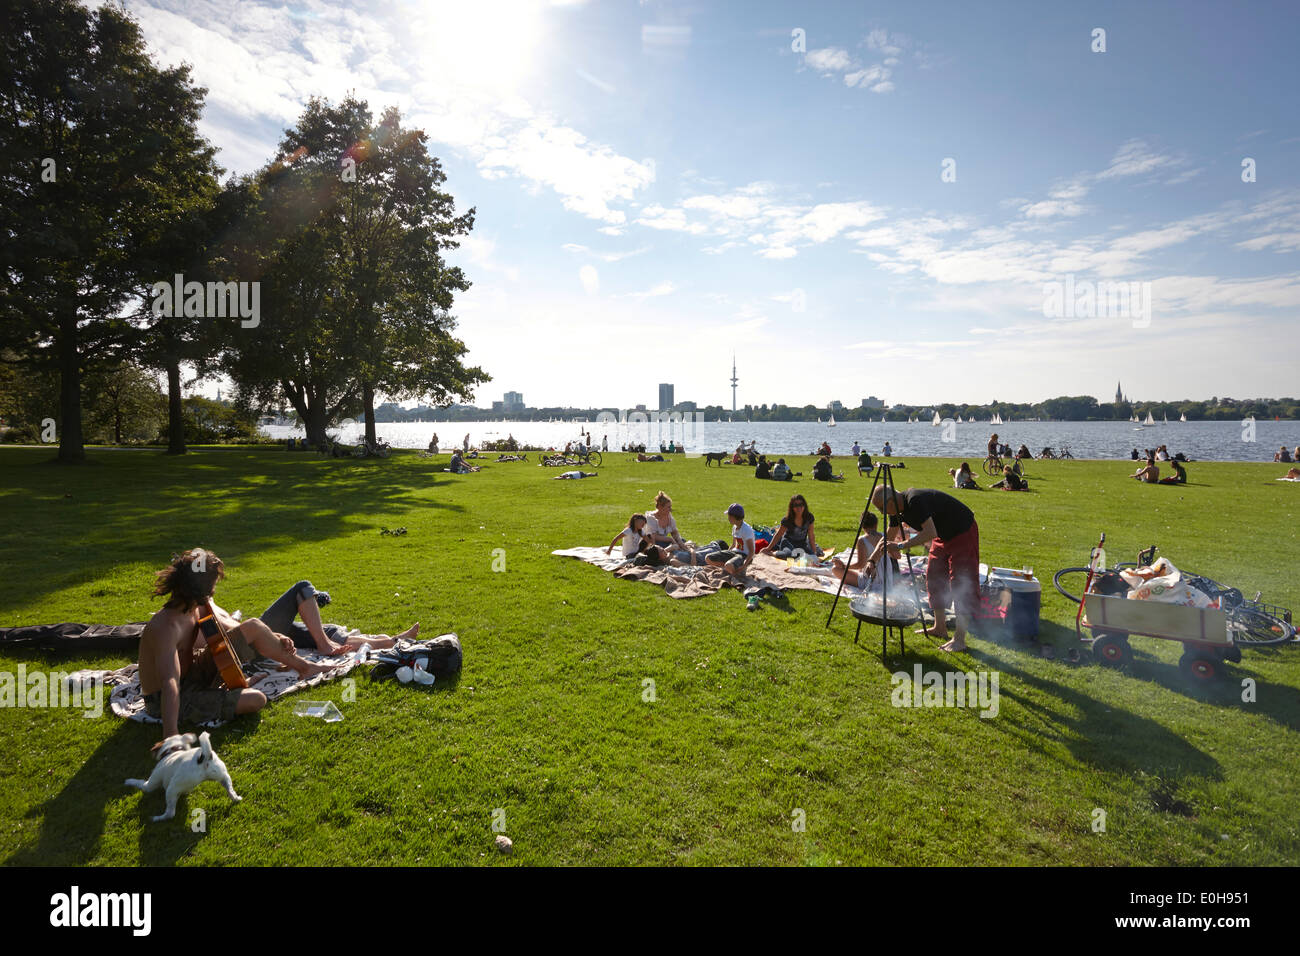 Barbeque on the Schwanenwik lawn, Alsterpark, east bank of the Outer Alster Lake, Aussenalster, Hamburg, Germany - Stock Image